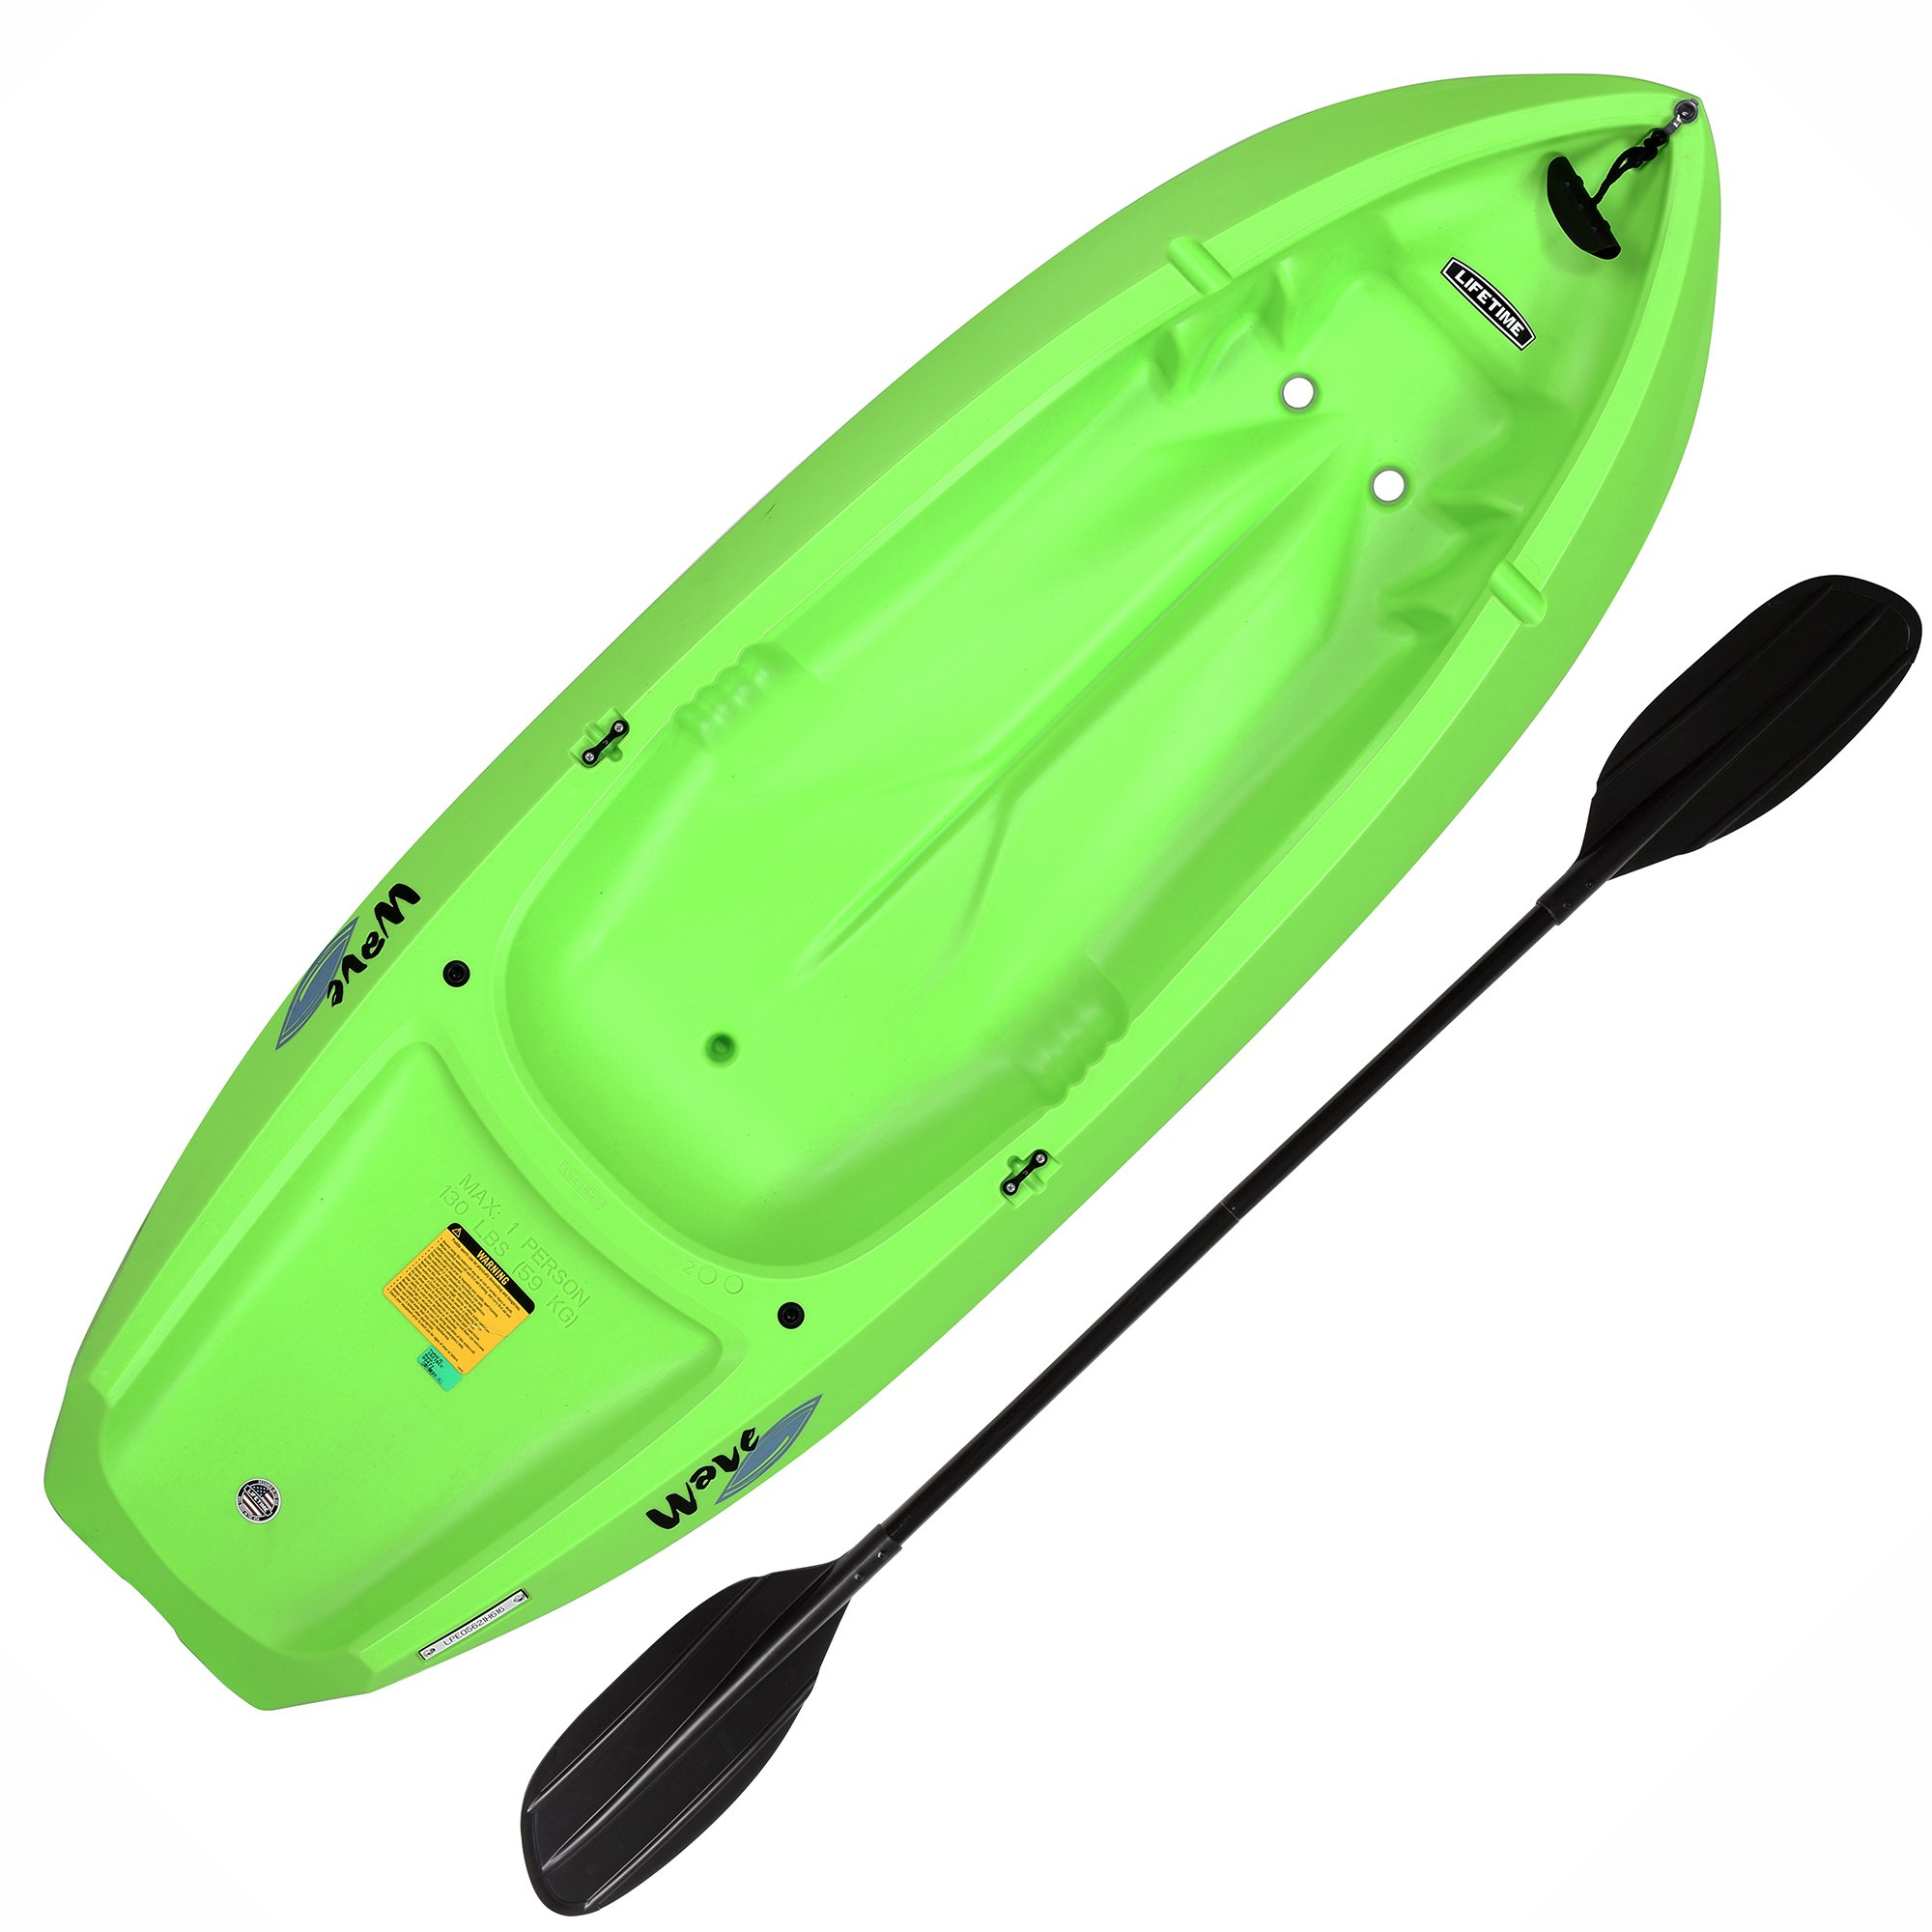 Lifetime Youth Wave Kayak with Paddle, 6 Feet, Green by Lifetime